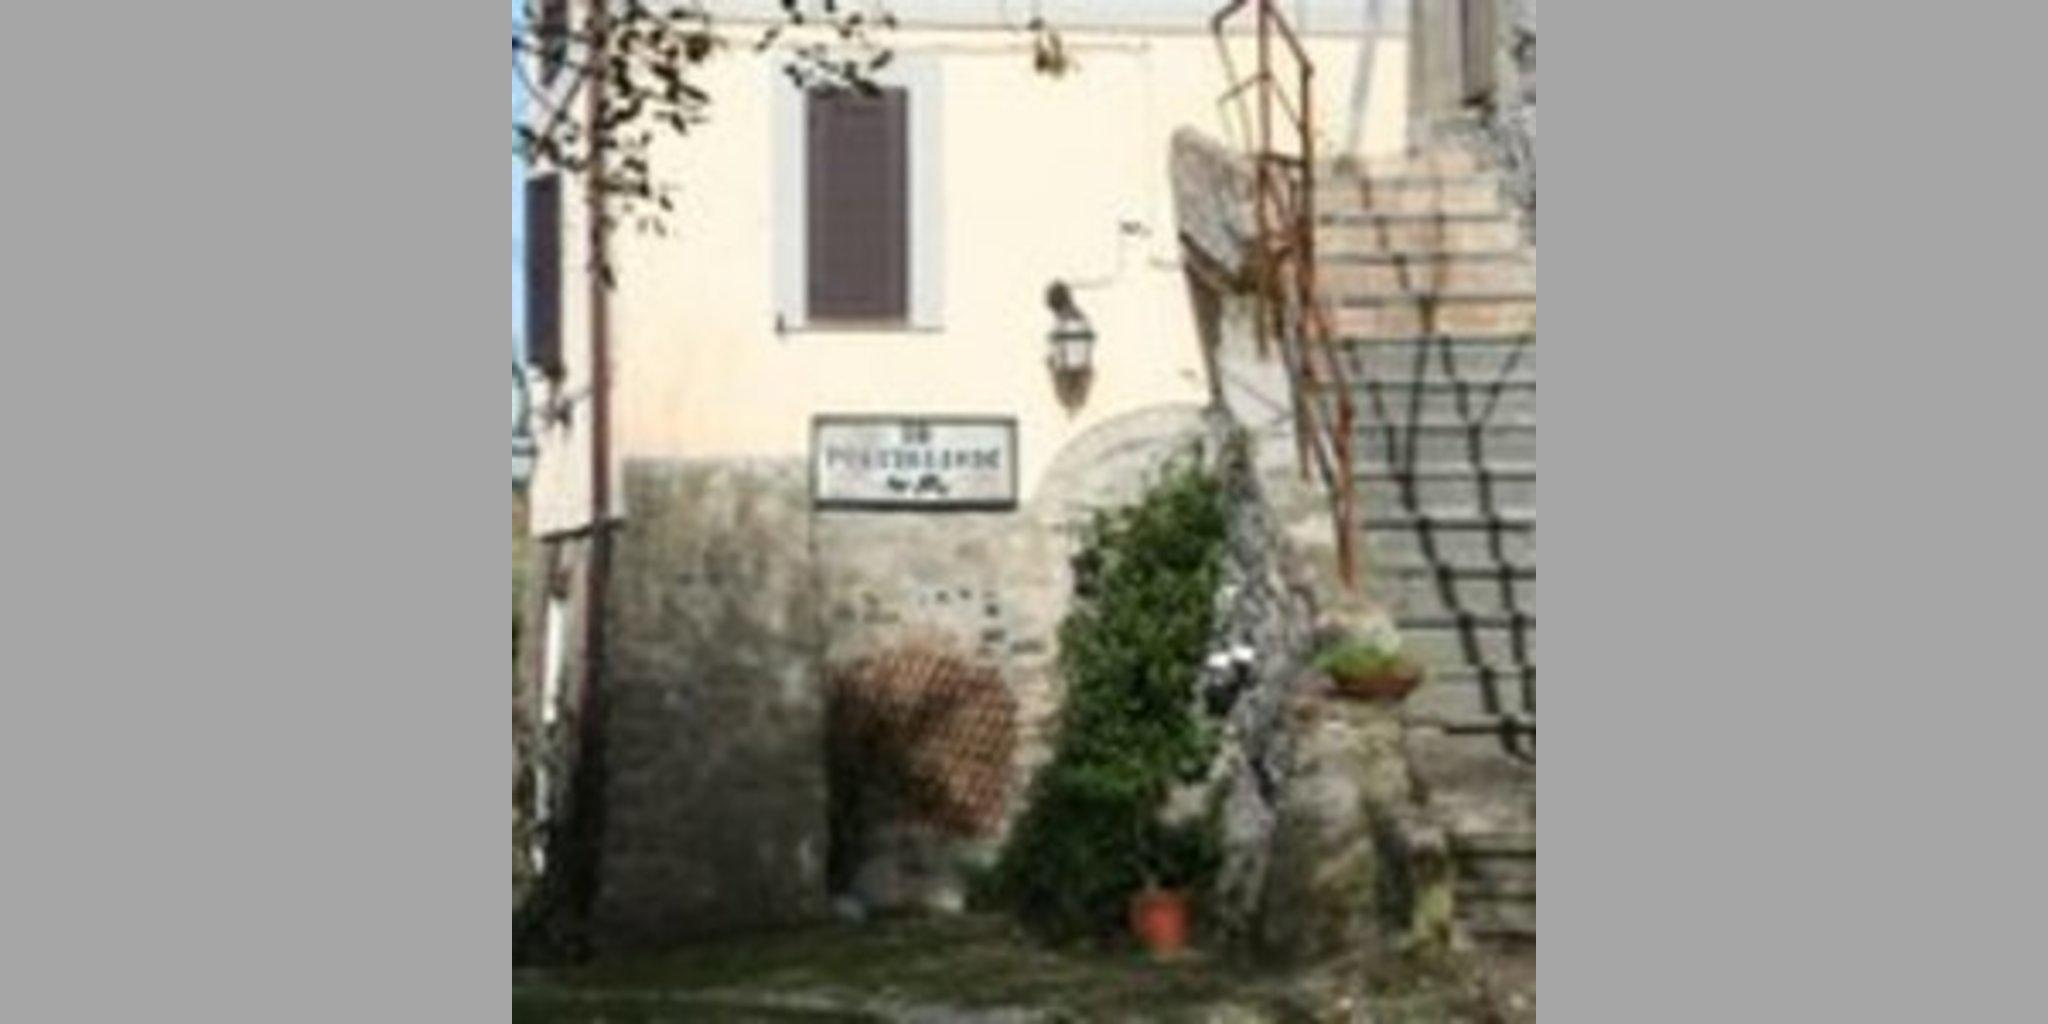 Guest House Montefiascone - Casali